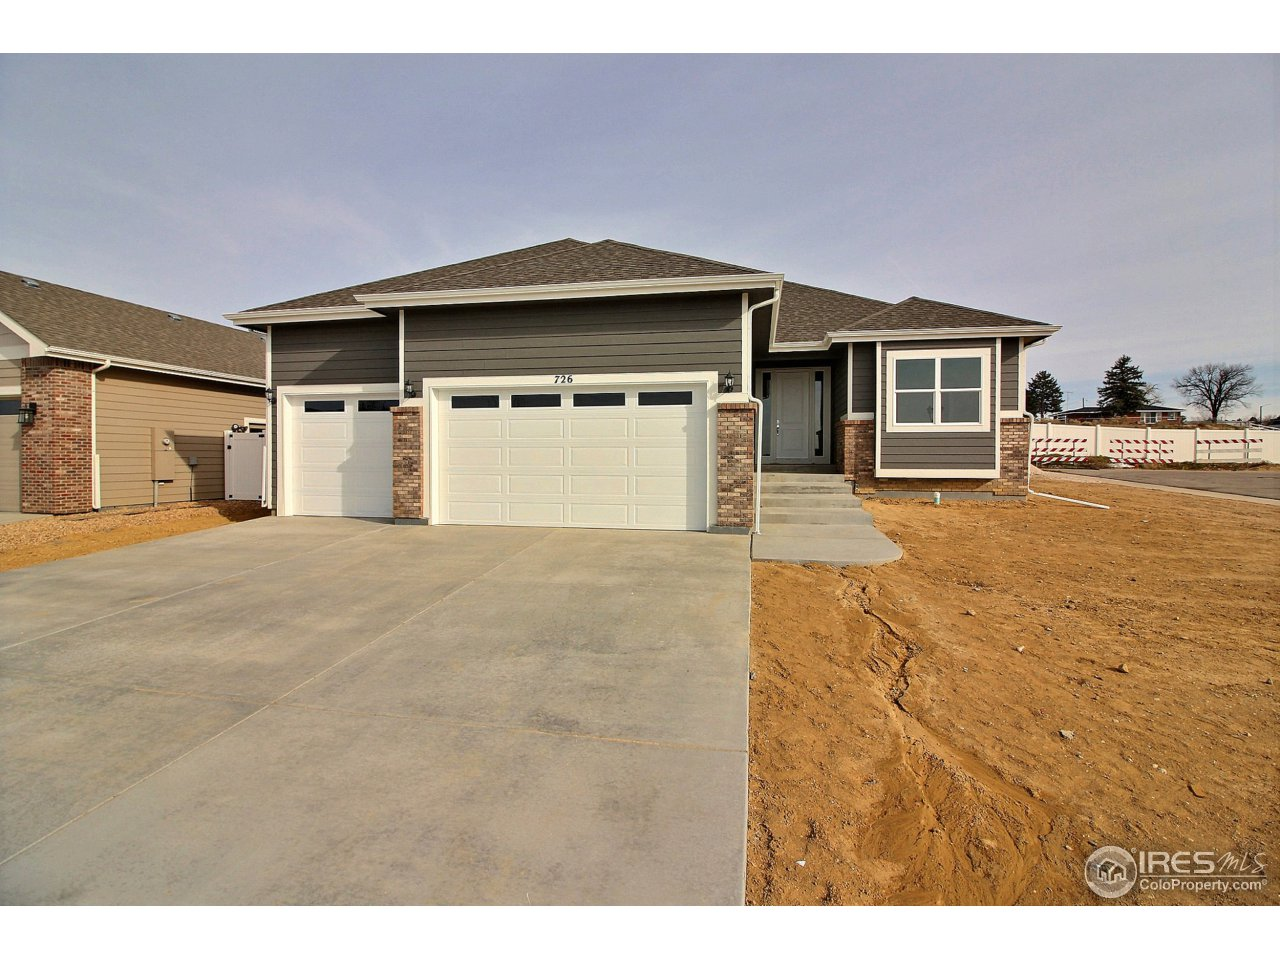 726 61st Ave, Greeley CO 80634